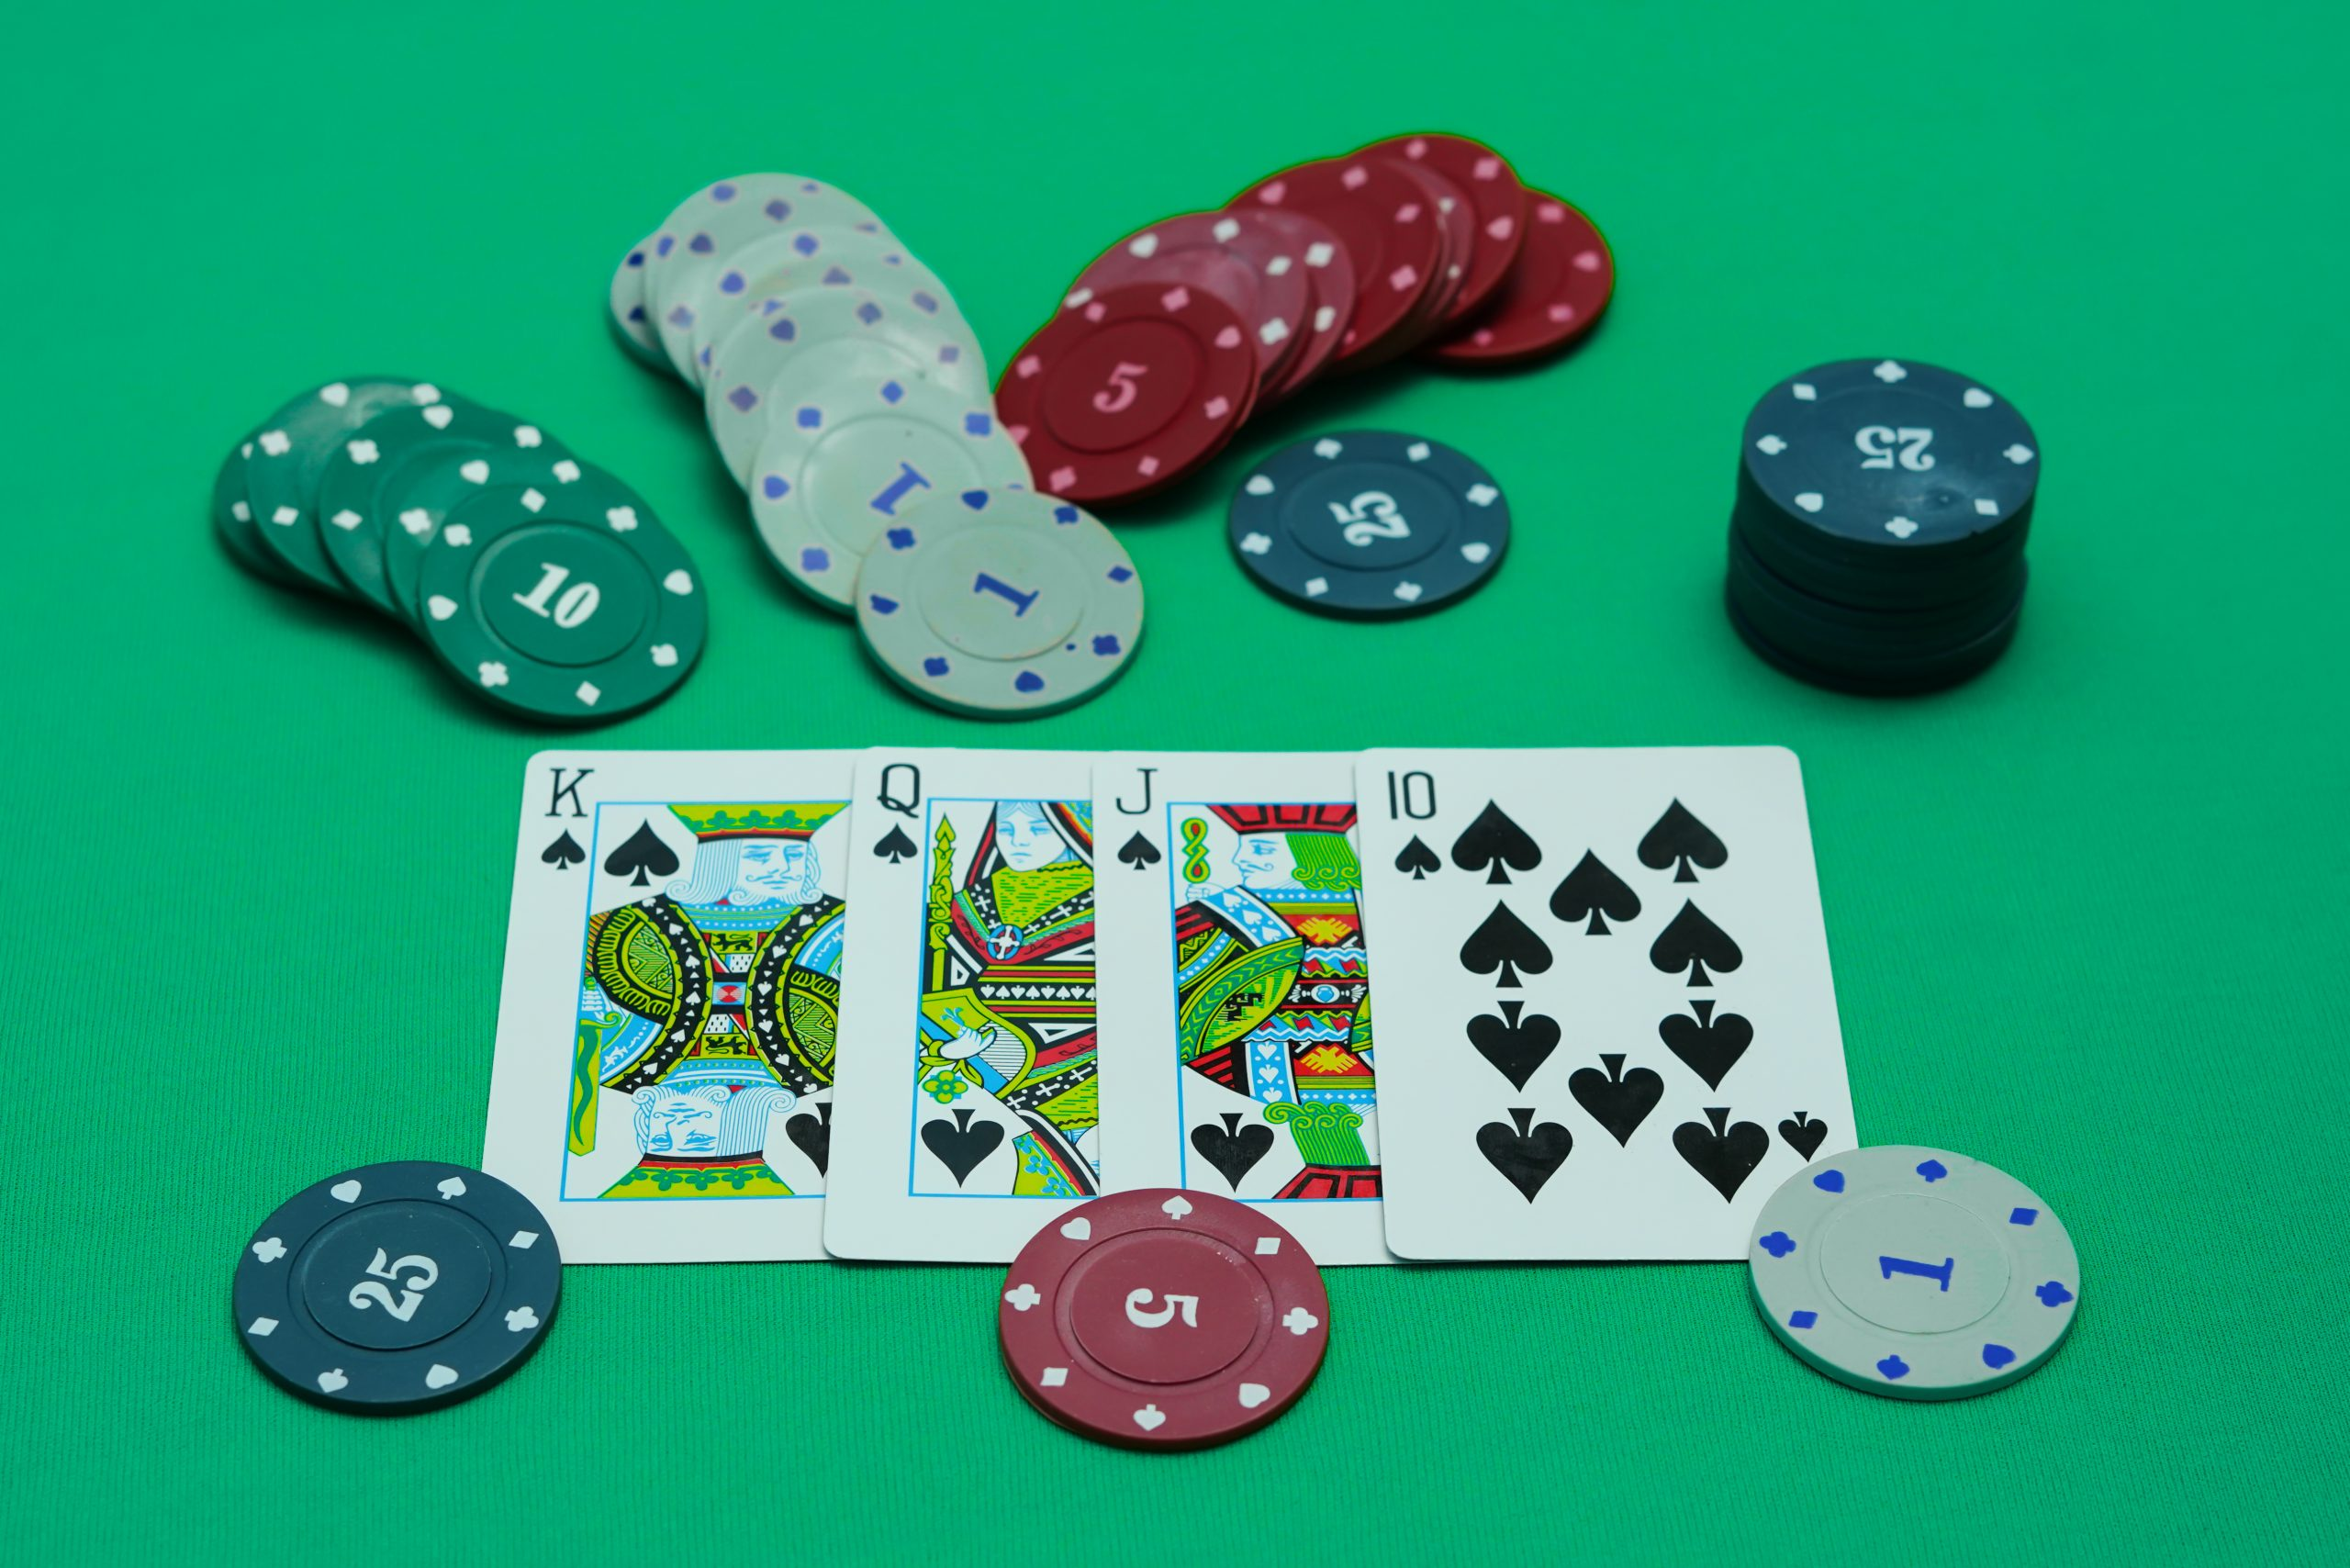 Teen Patti Cards and Chips